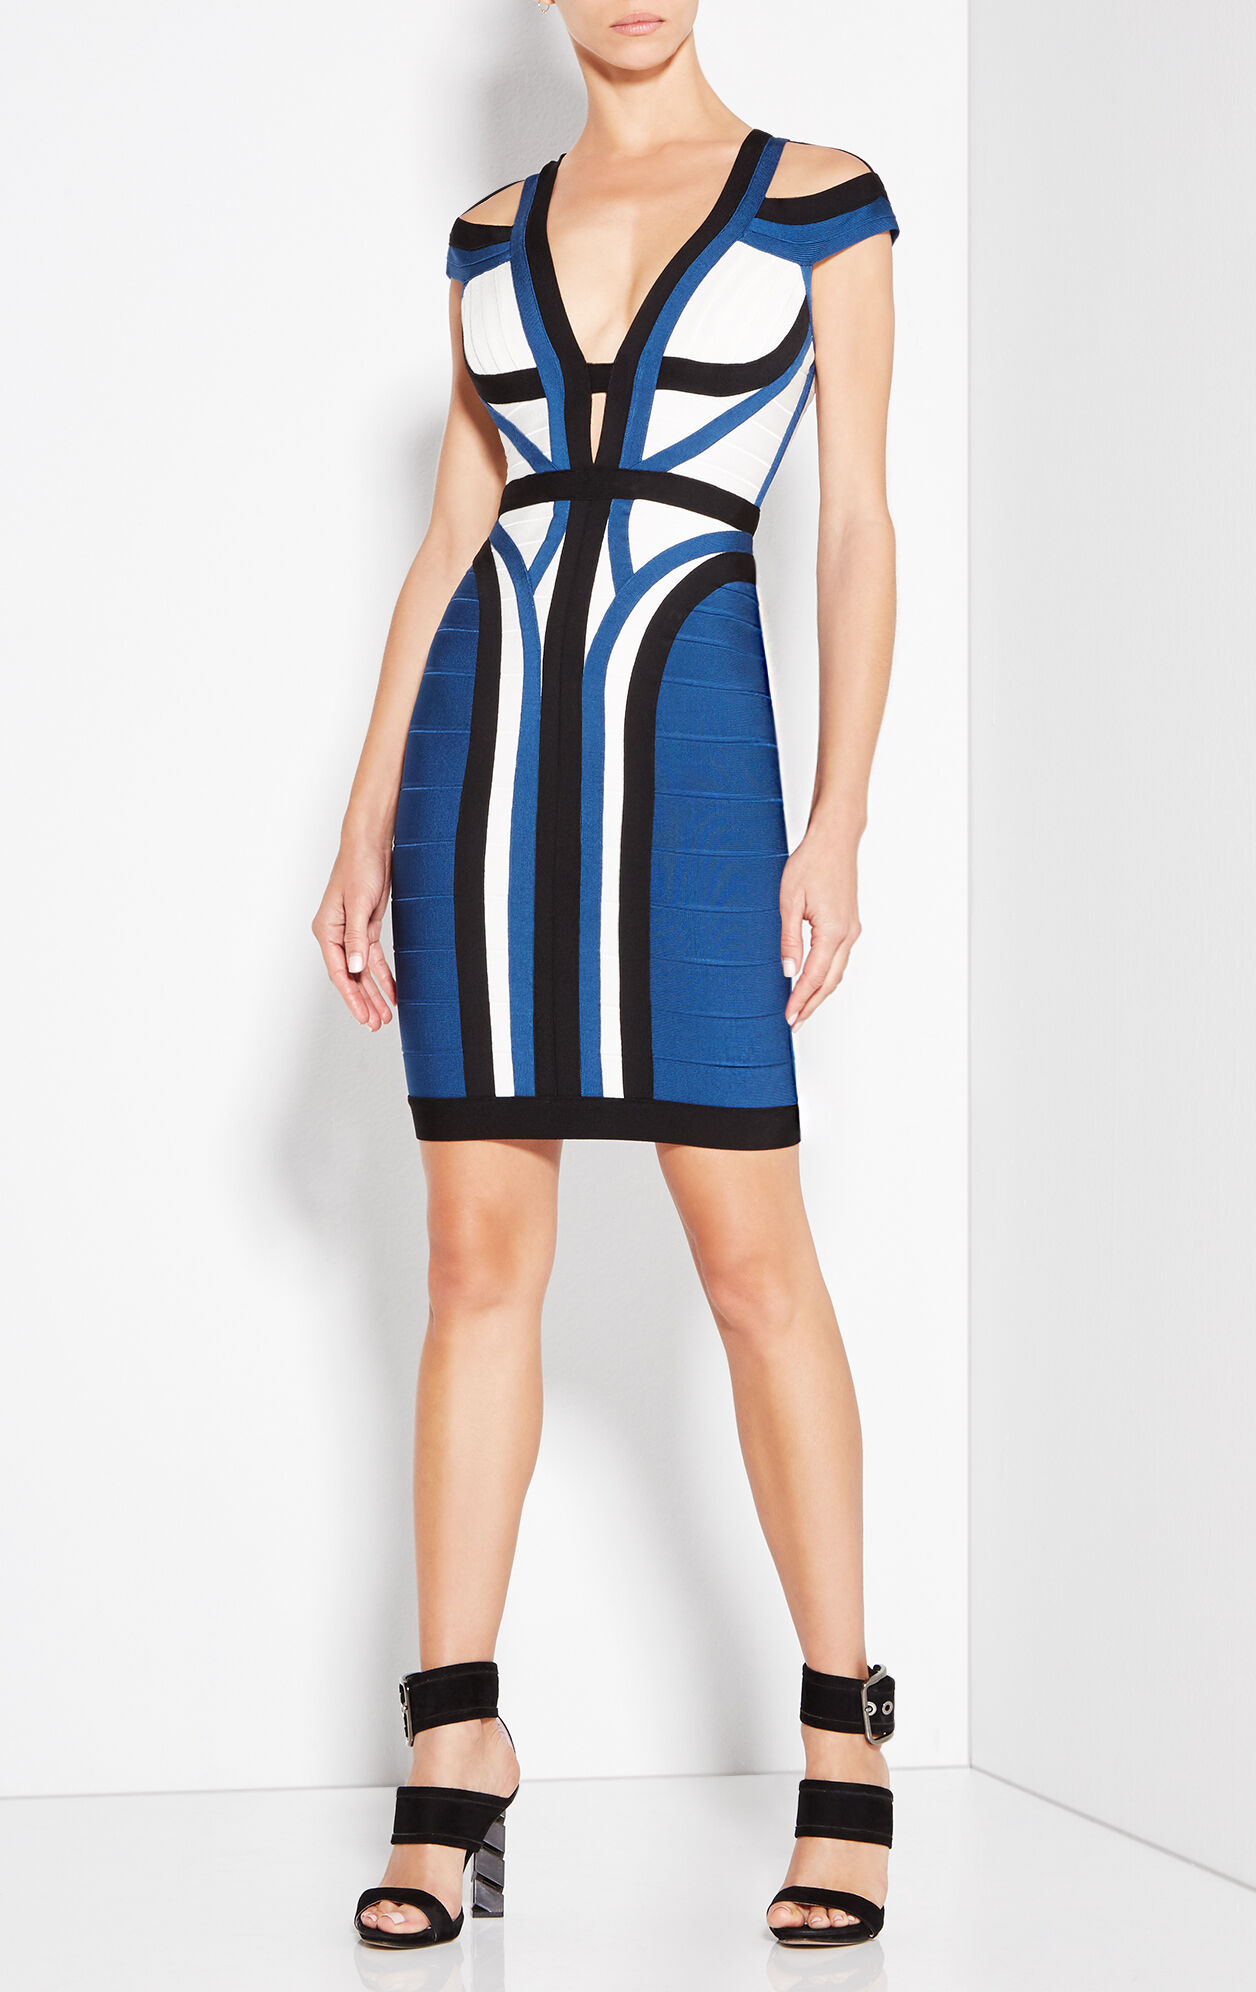 Imani Color-Blocked Dress